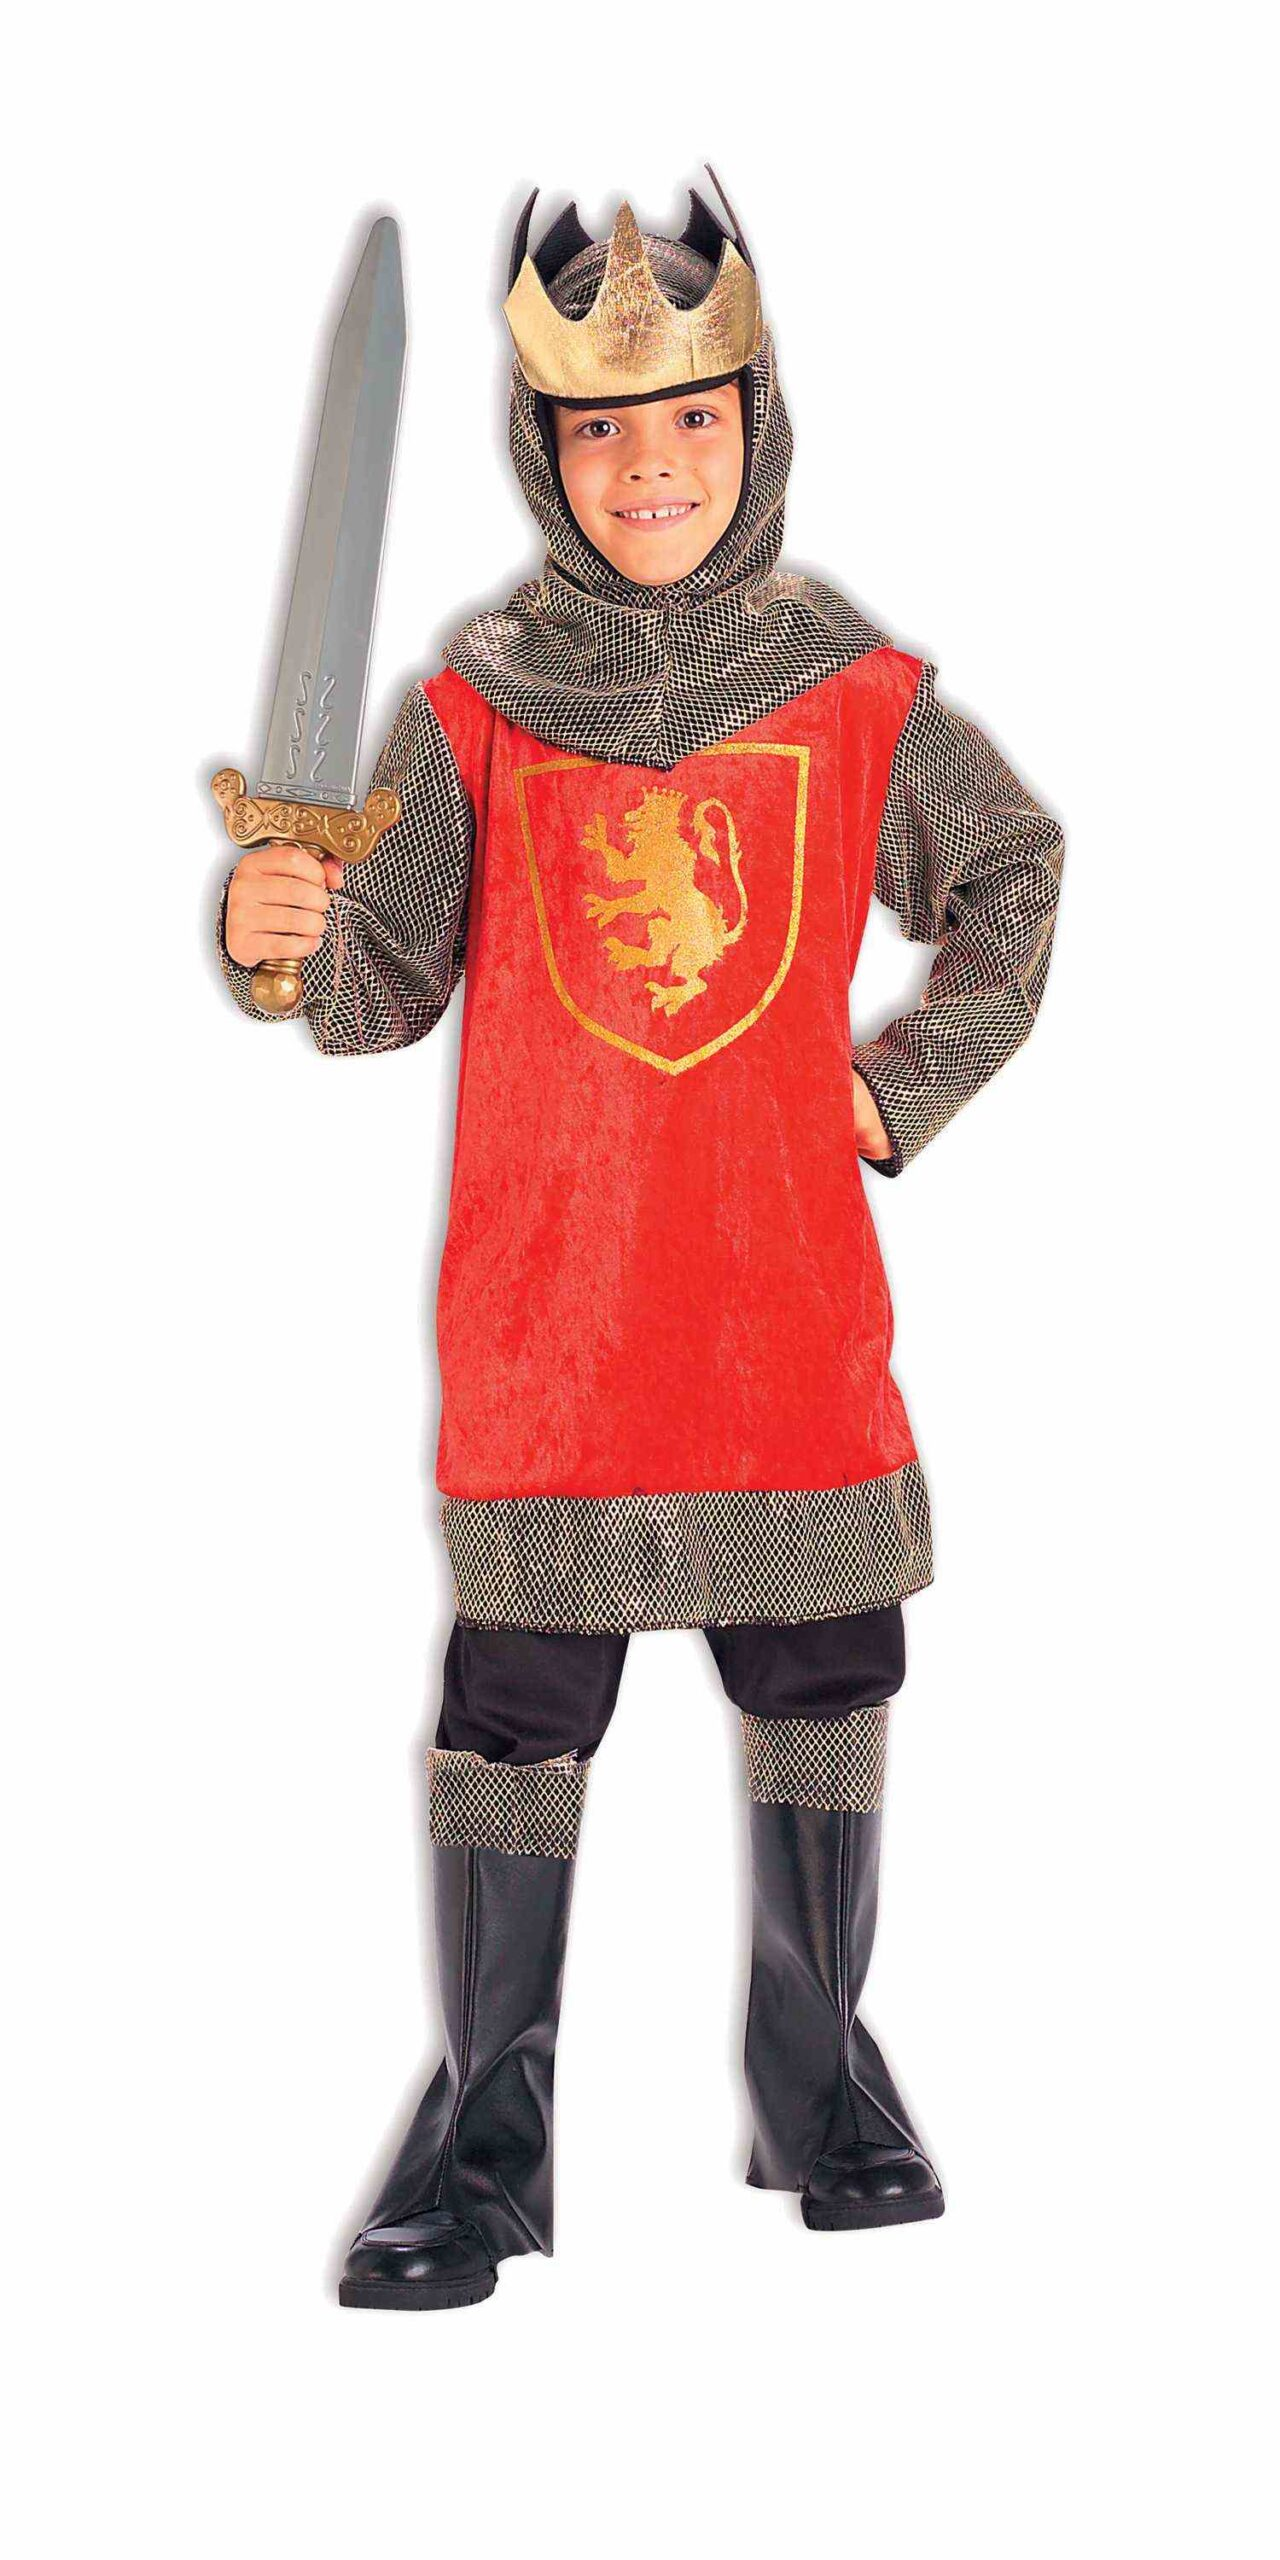 Little boy in red british knight costume with chain mail and sword